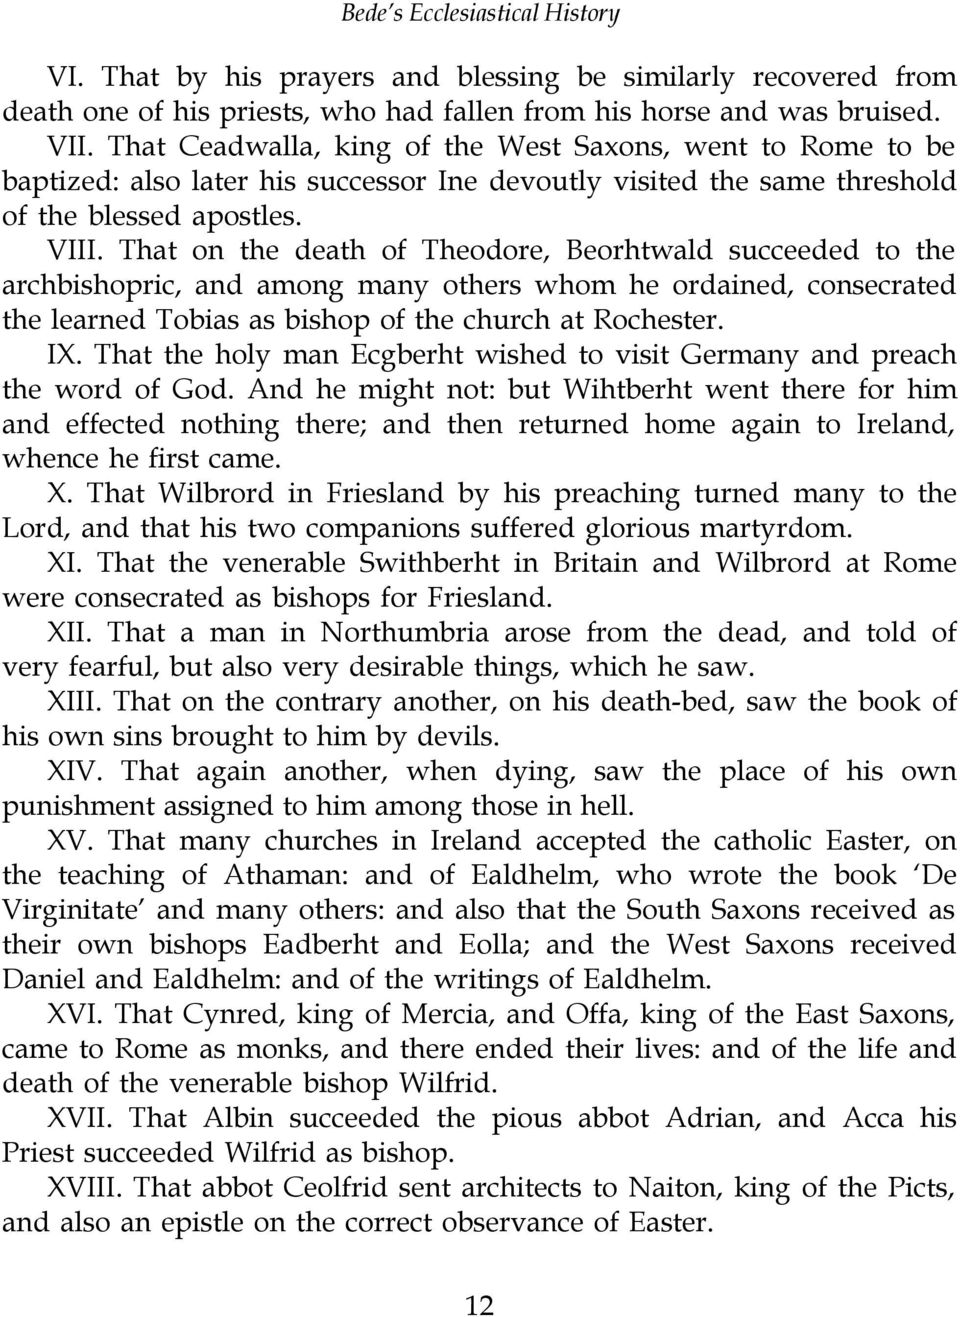 That on the death of Theodore, Beorhtwald succeeded to the archbishopric, and among many others whom he ordained, consecrated the learned Tobias as bishop of the church at Rochester. IX.